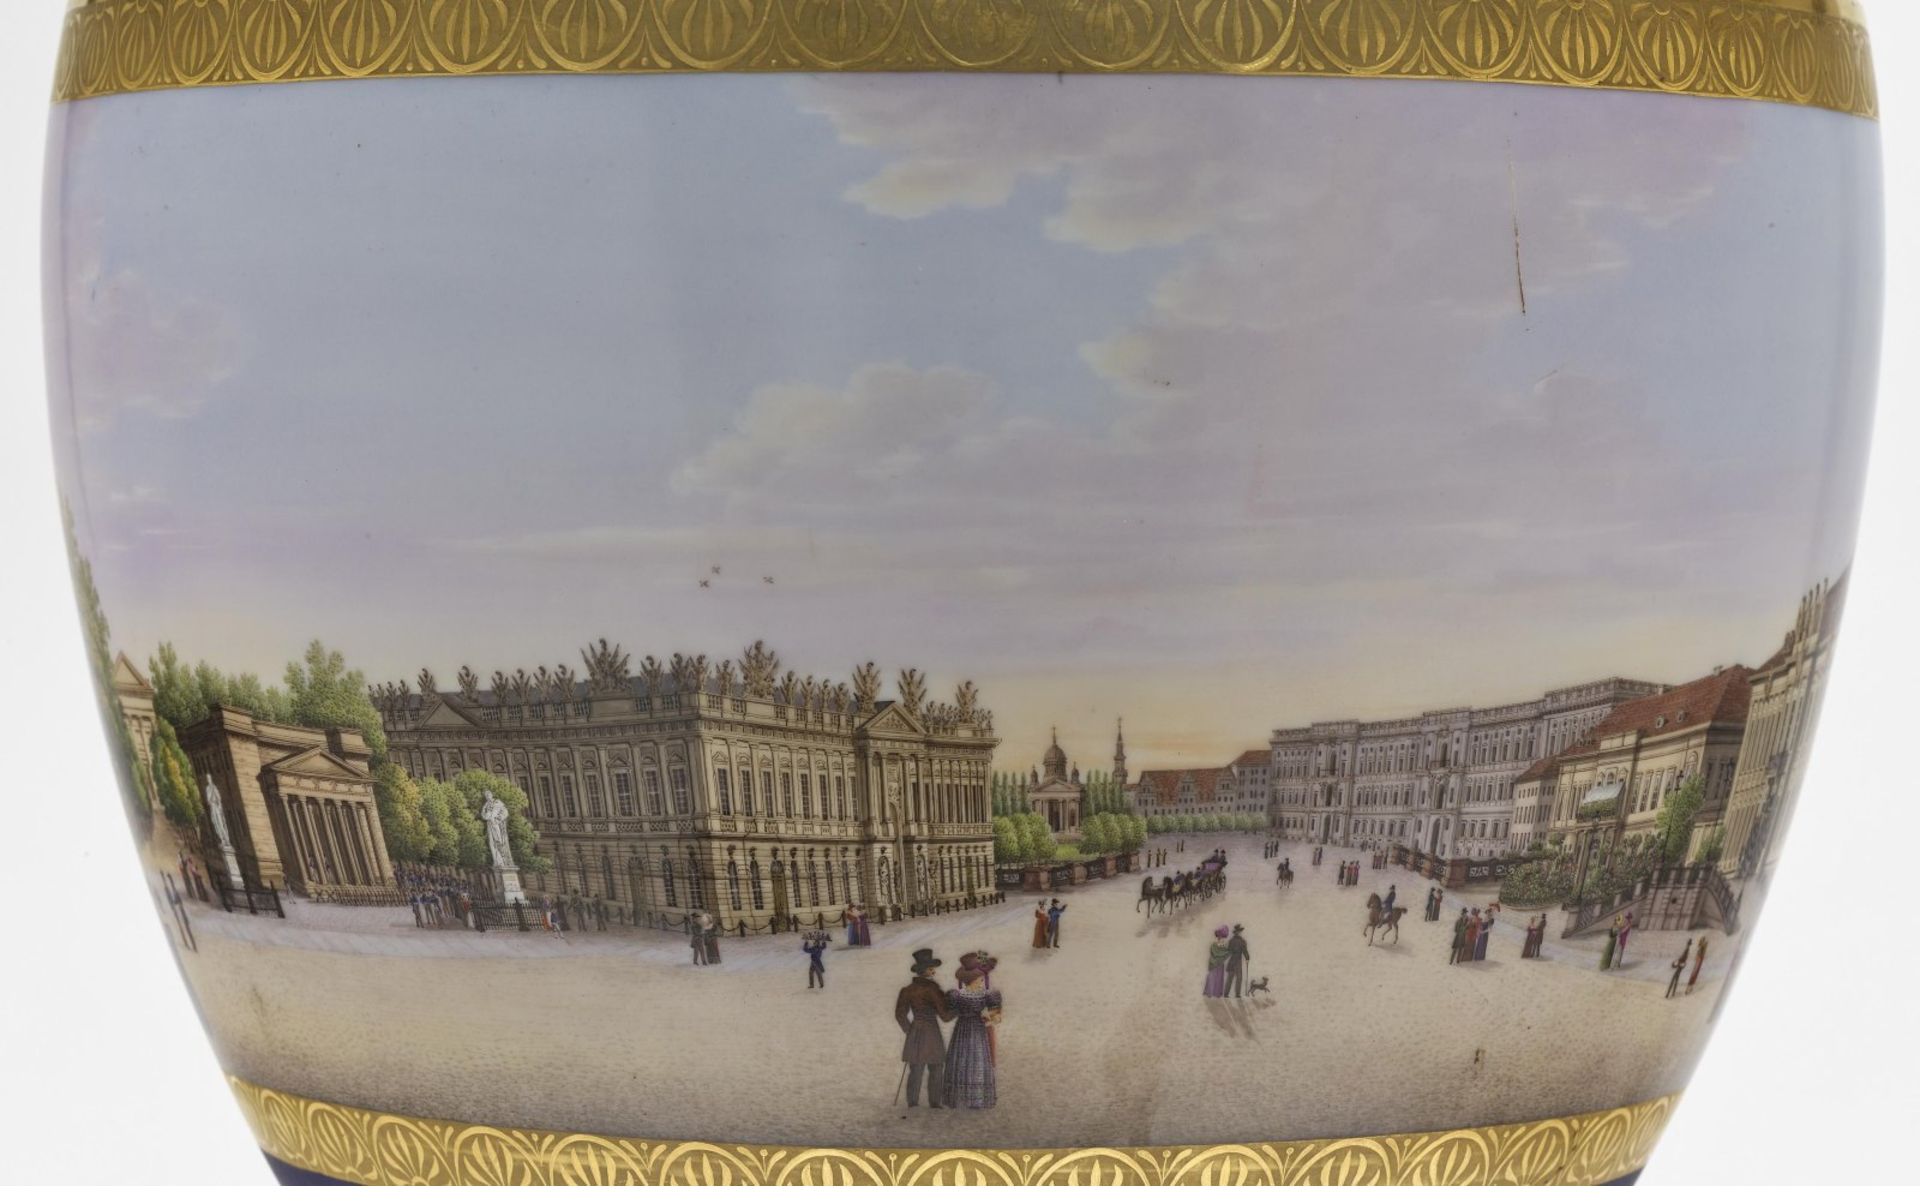 """A panoramic vase with a prospect of the street """"Unter den Linden"""" in Berlin - Bild 8 aus 10"""